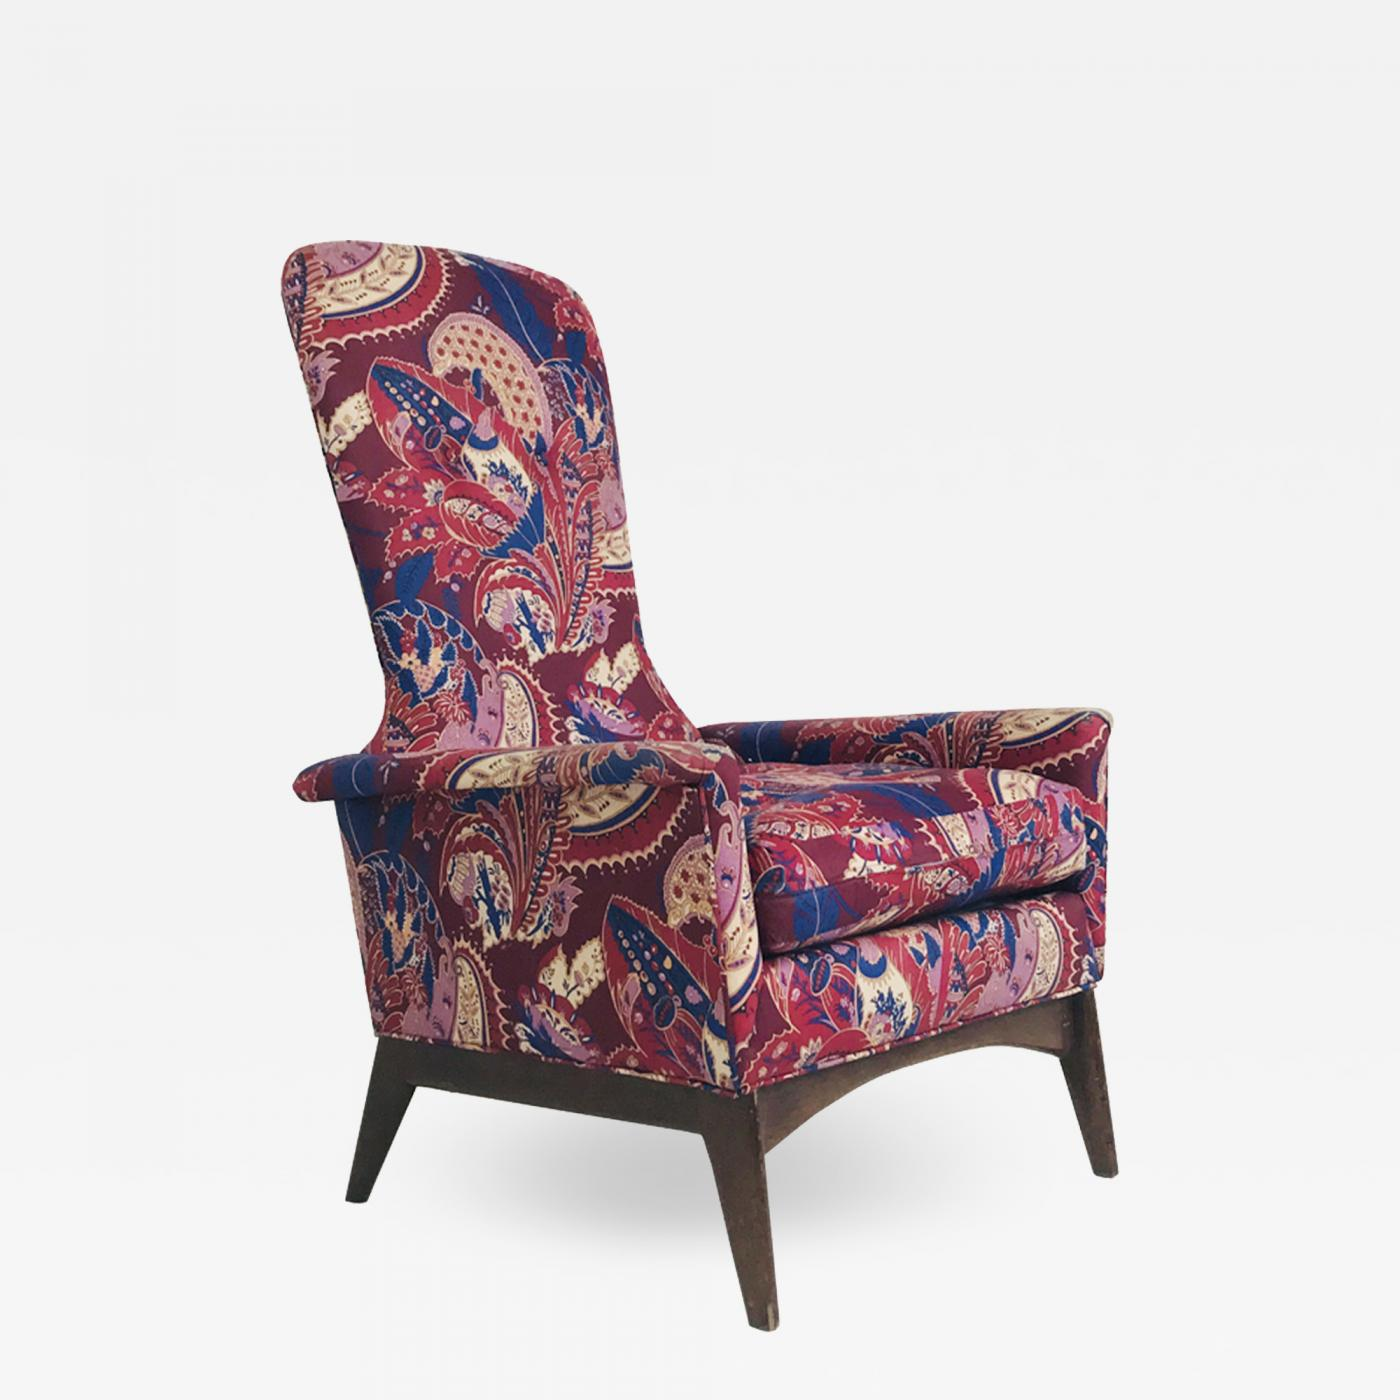 Paisley Chair Adrian Pearsall Adrian Pearsall Tall Back Paisley Armchair